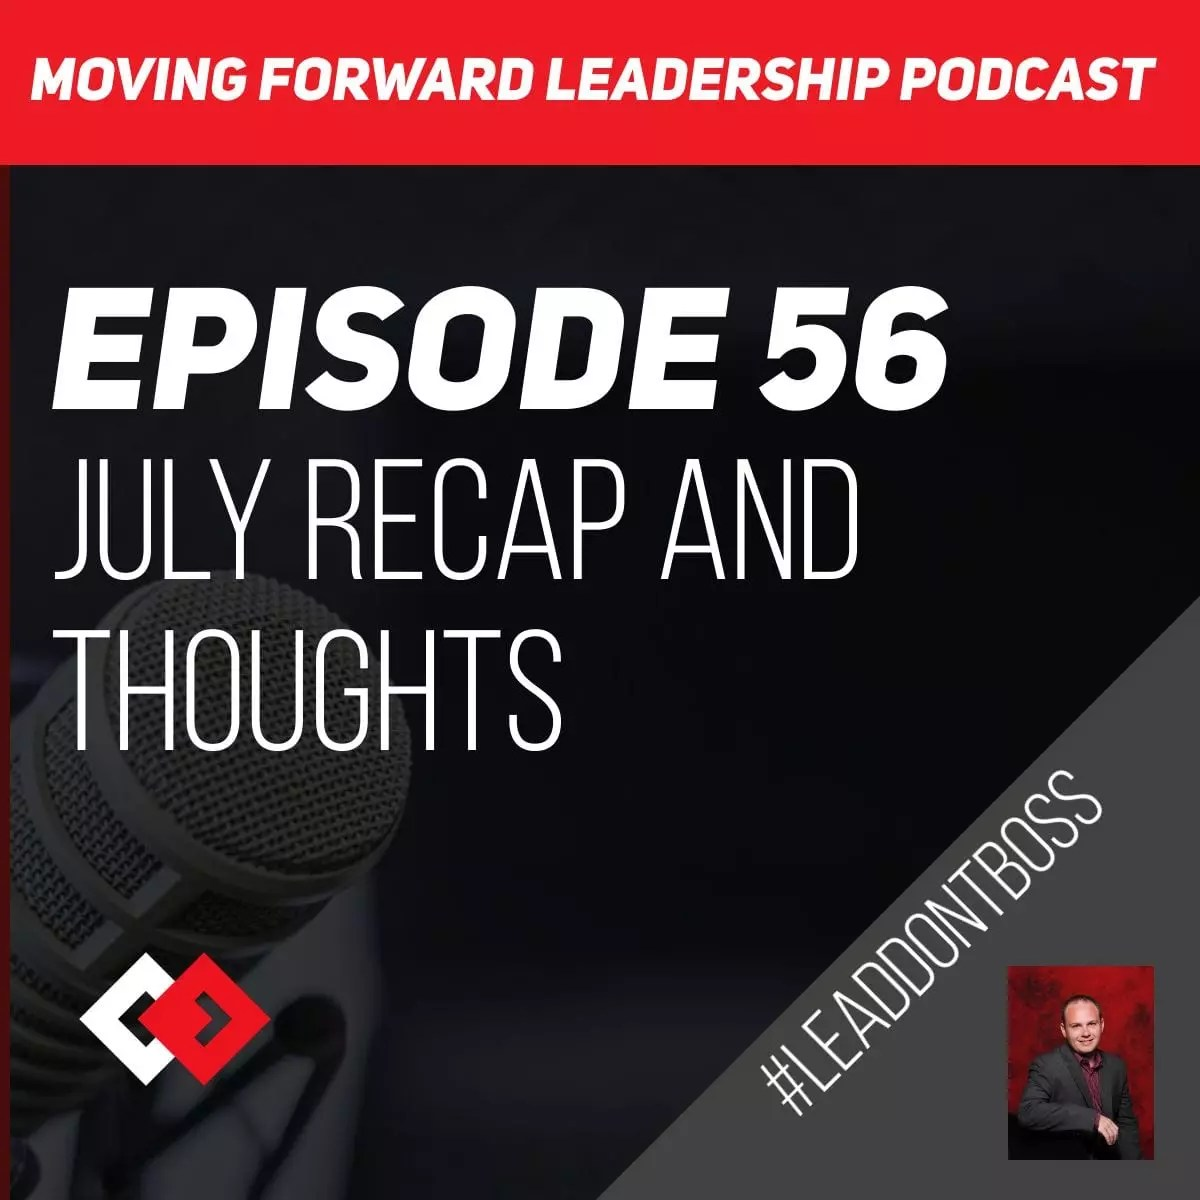 July Recap and Thoughts | Episode 56